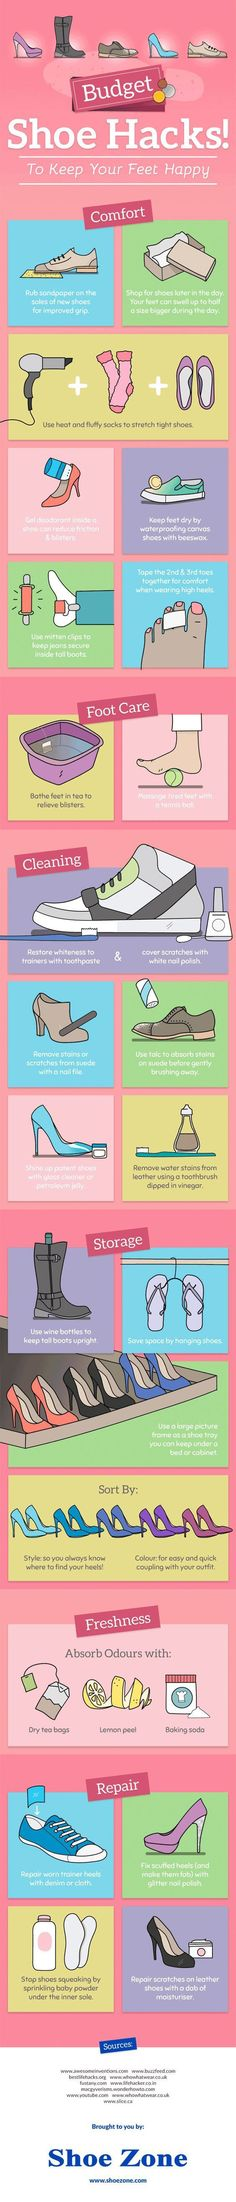 If you have a cute-shoes-but-too-tight-for-my-feet problem, all you have to do is wear large socks while blow drying the area that's too tight.